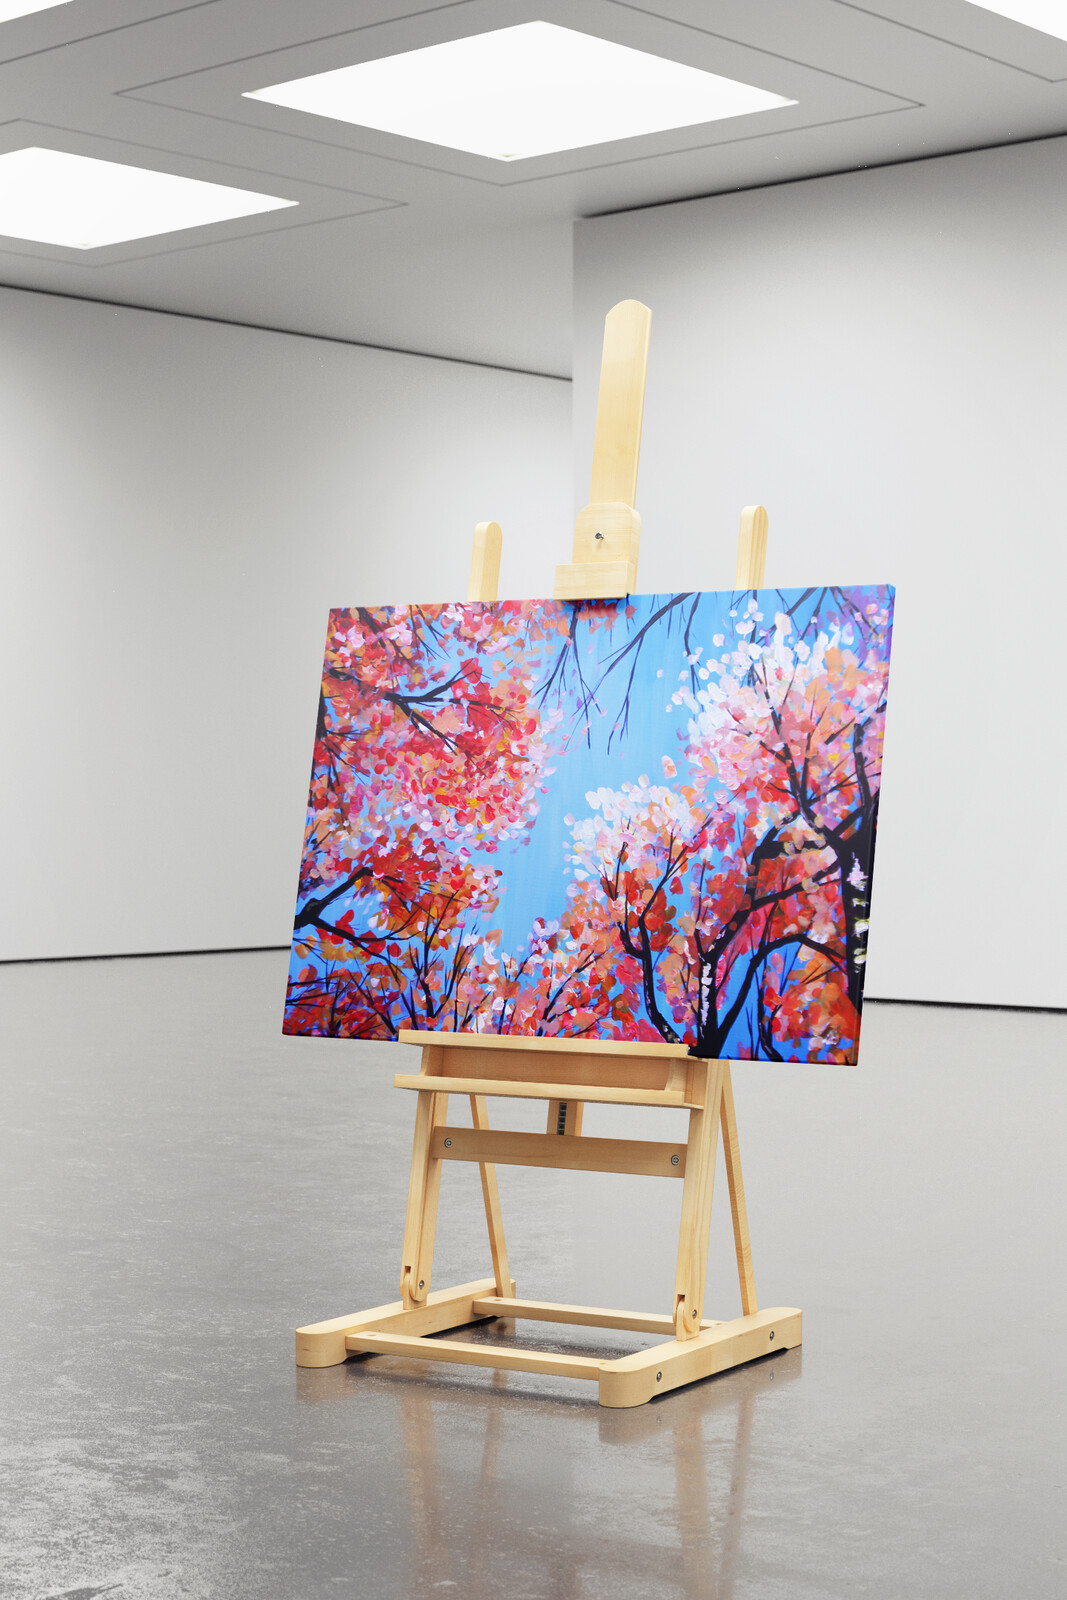 Commissioned acrylic painting of trees in the fall. Displayed on an easel psd mock up.